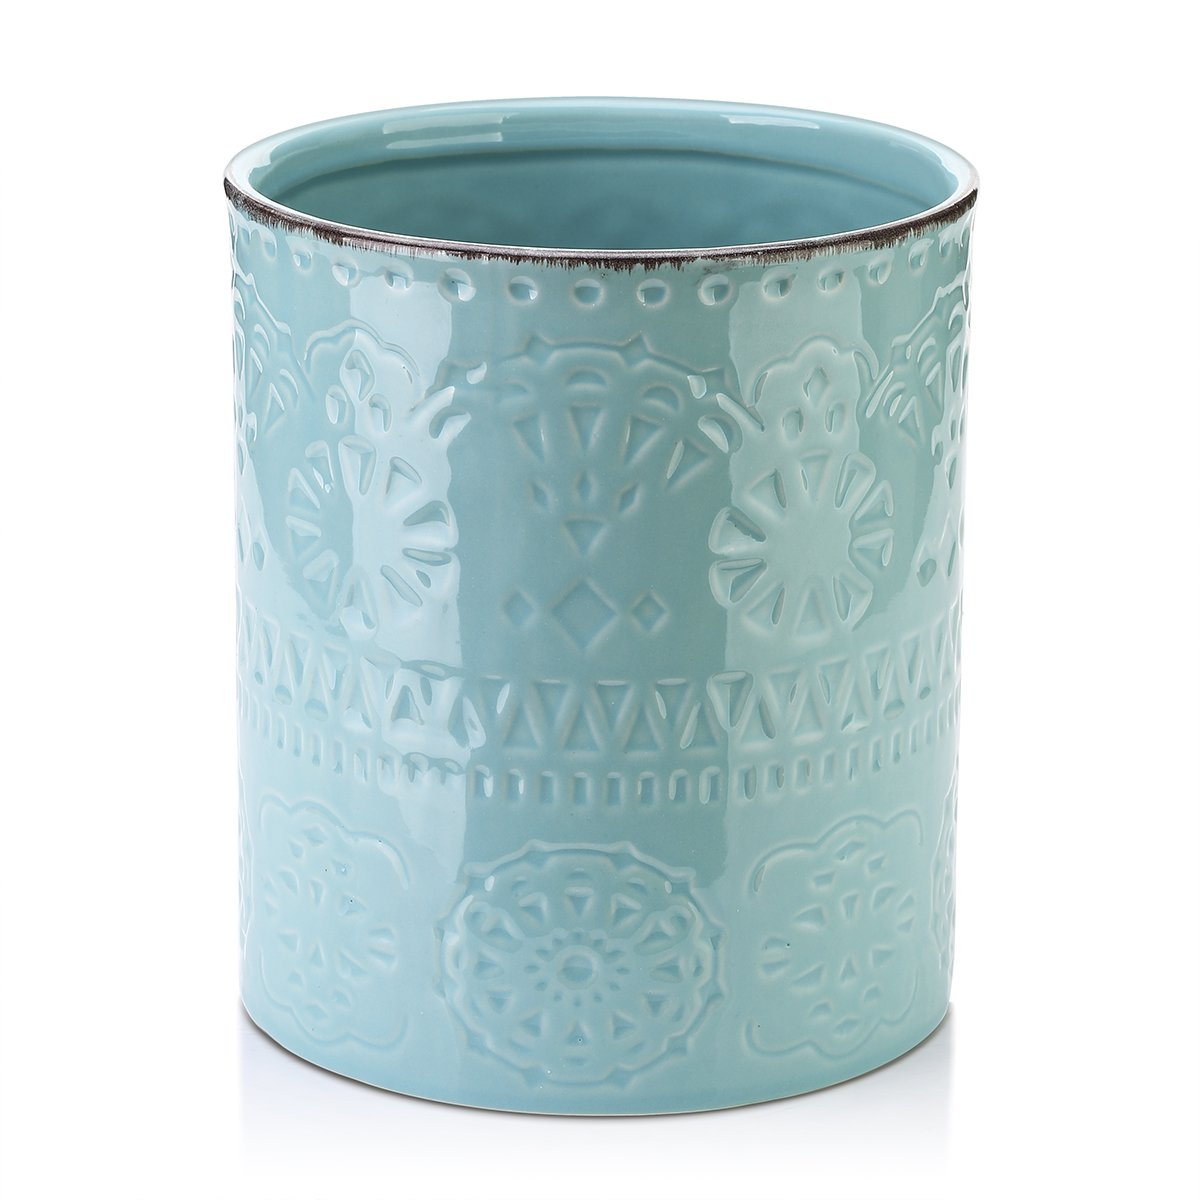 Lifver Fine Embossed Ceramic Crock Utensil Holder, 7.2'' x 6.2'', Blue